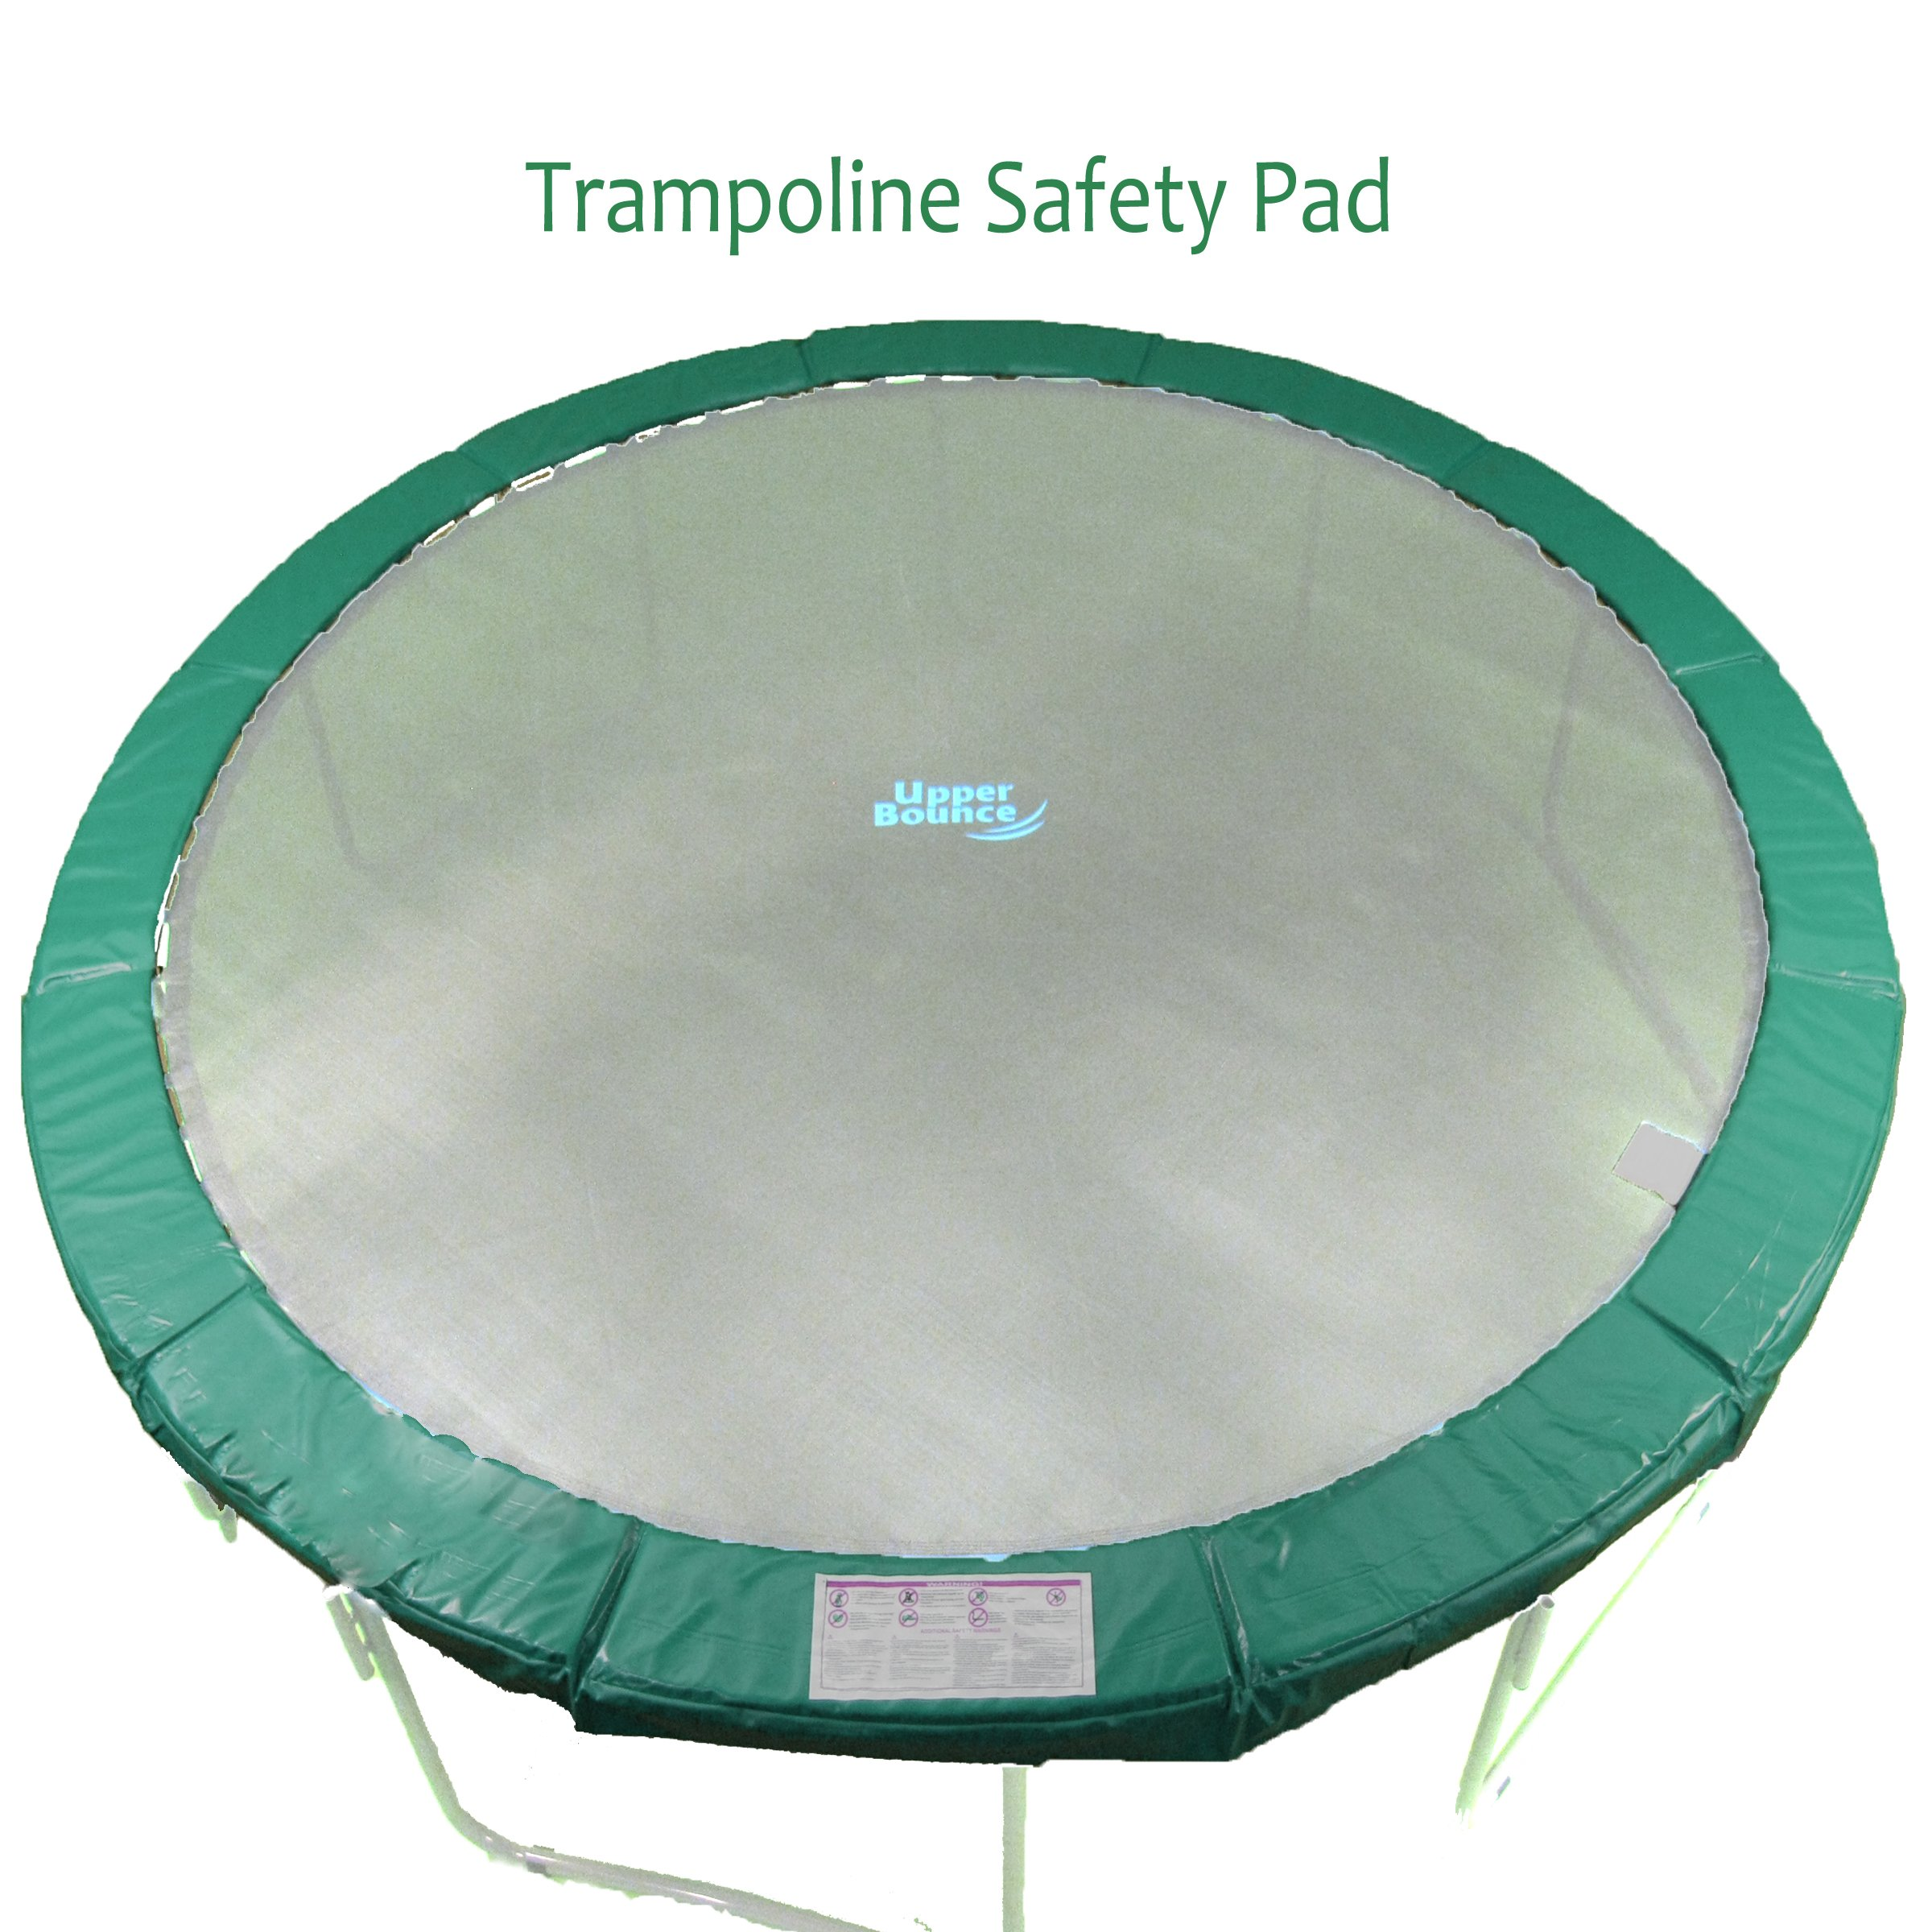 Upper Bounce Super Trampoline Replacement Safety Pad (Spring Cover) Fits for 12 FT. Round Frames - Green by Upper Bounce